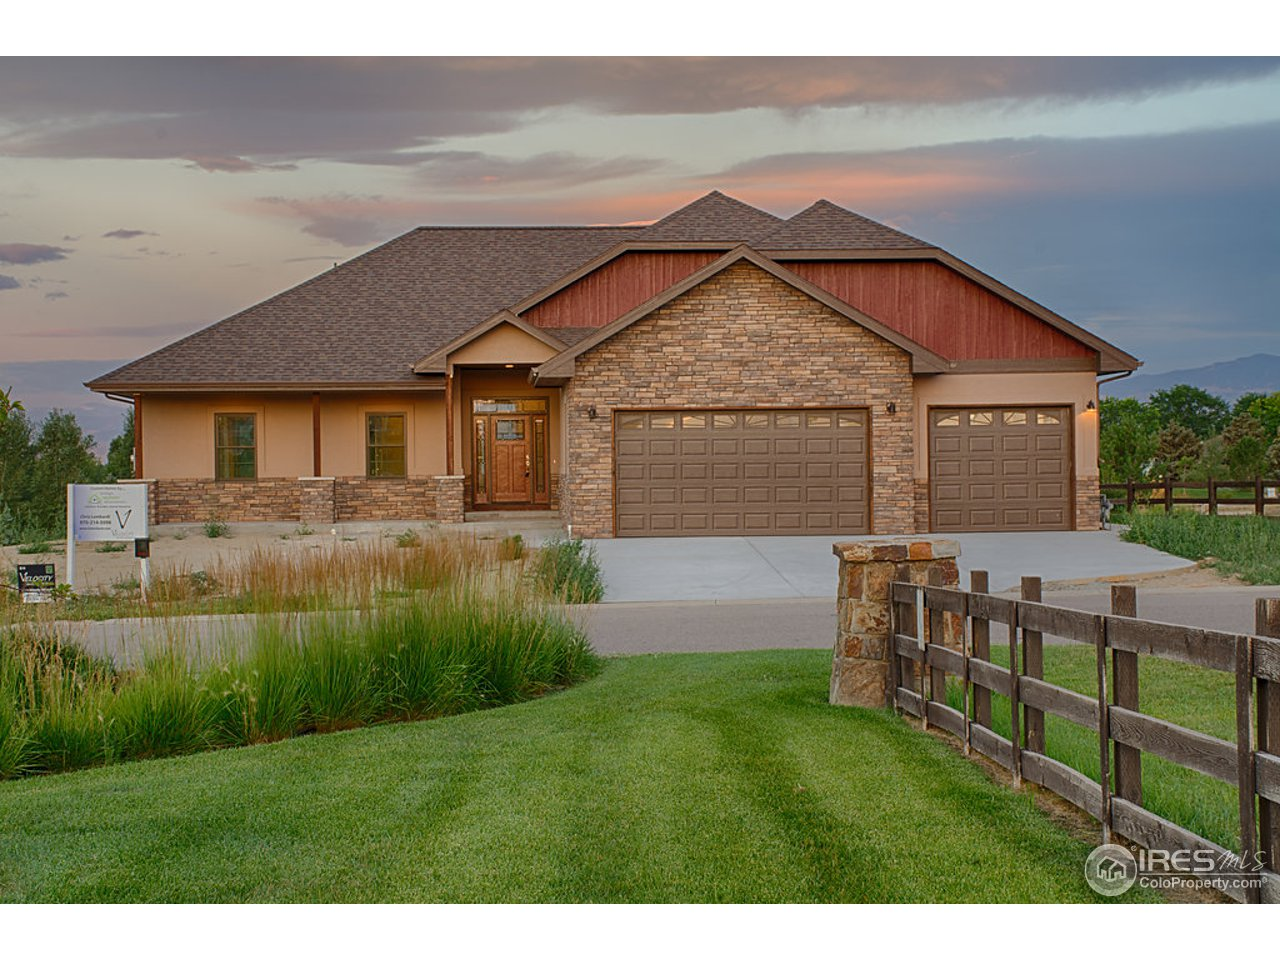 1115 WATERFALL ST, TIMNATH, CO 80547